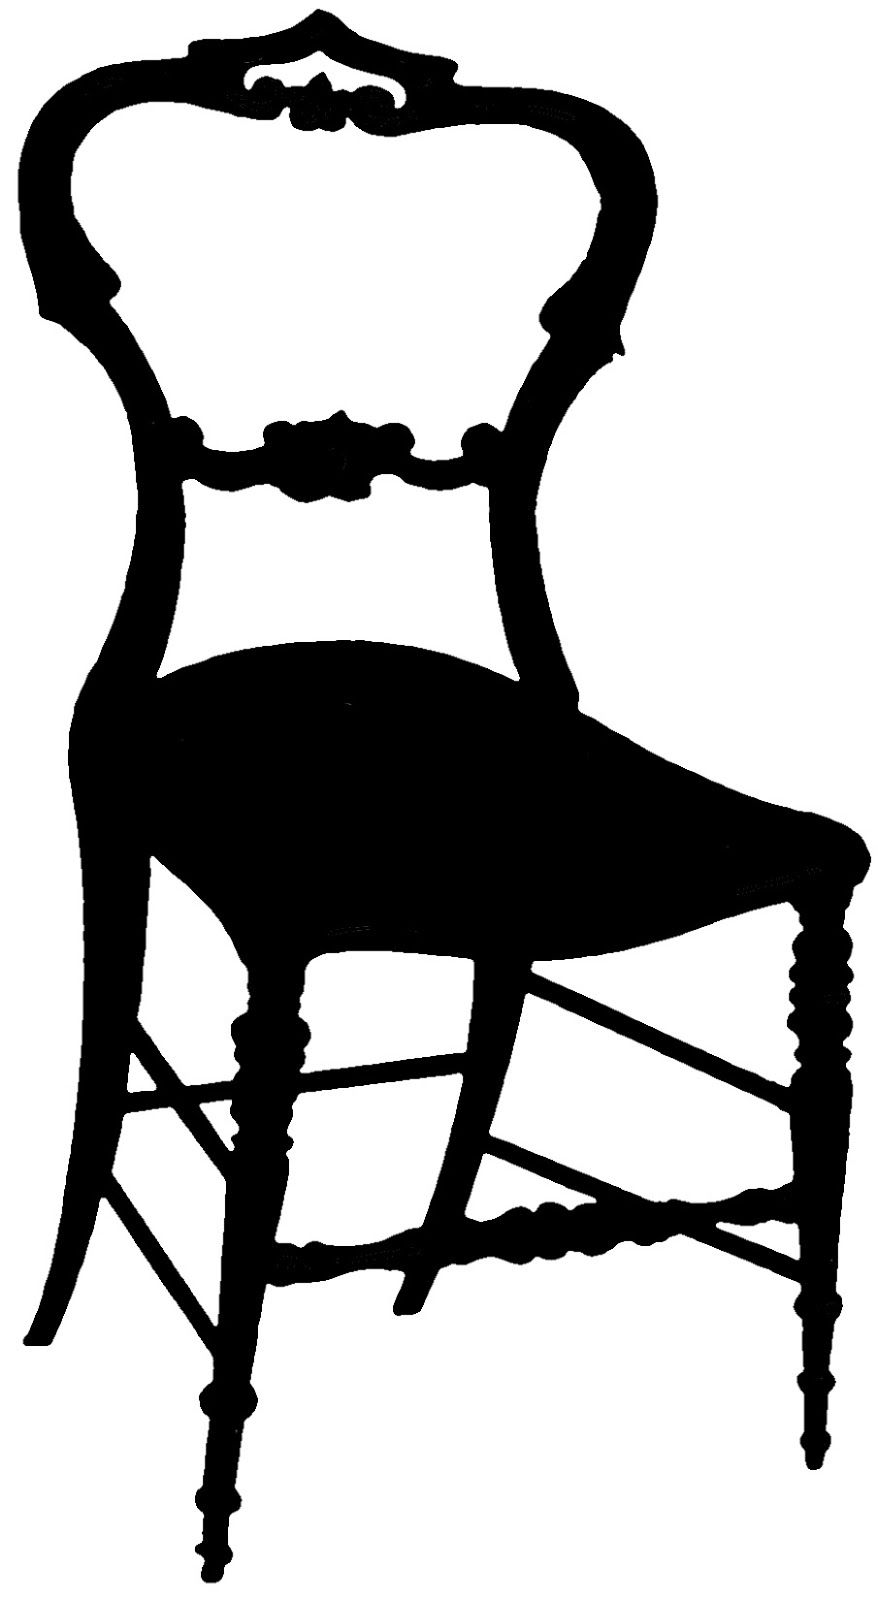 Vintage Graphic Silhouette Frenchy Chair The Graphics Fairy Vintage Graphics Silhouette Artist Silhouette Drawing